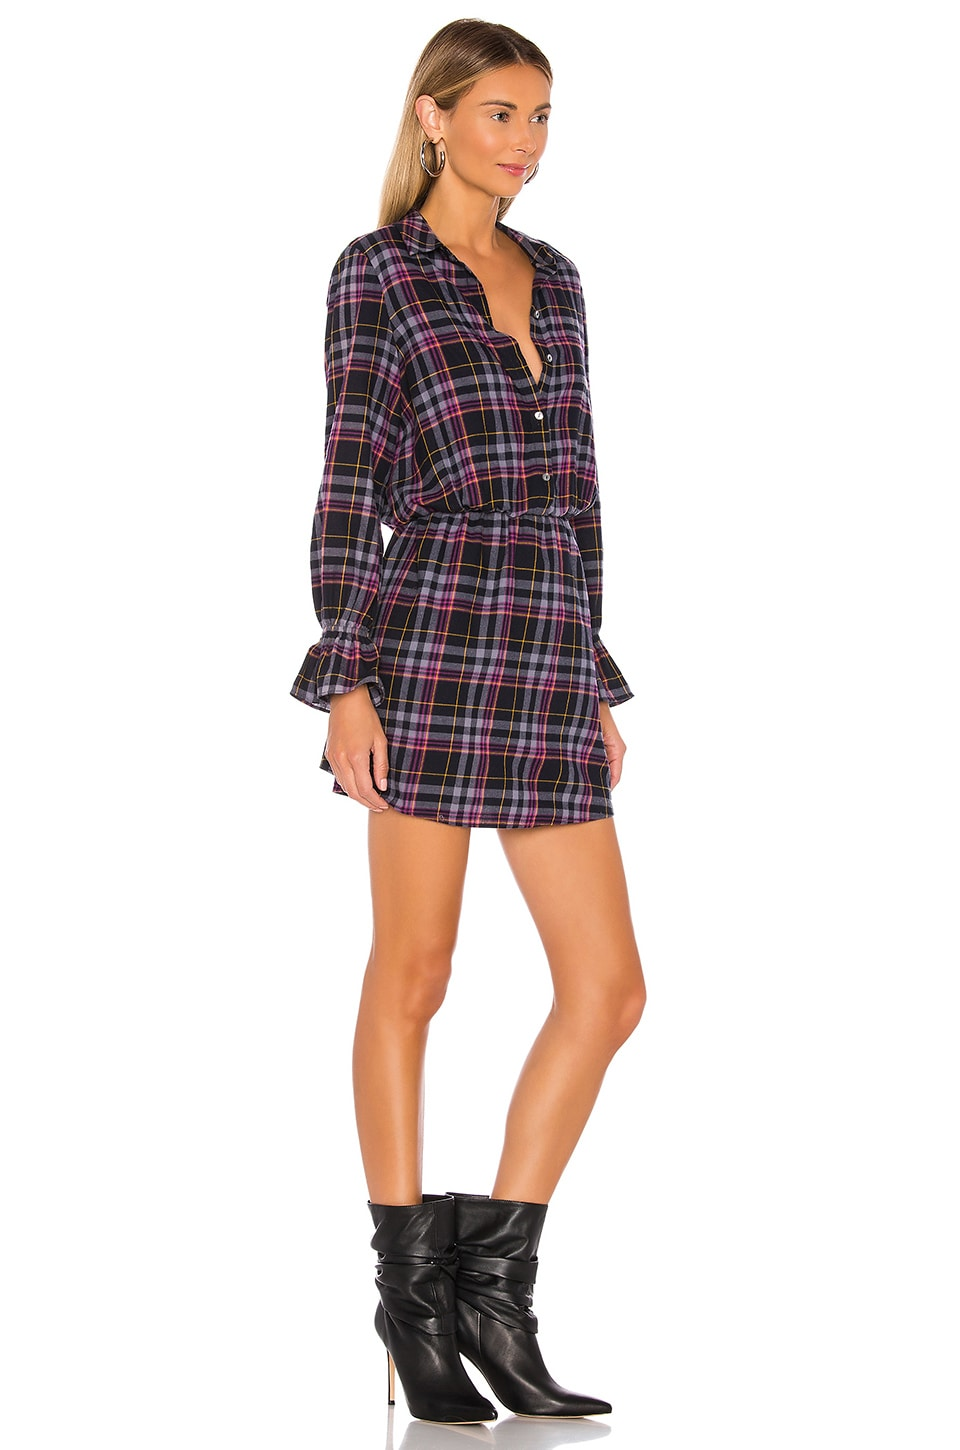 Button Up Plaid Dress, view 2, click to view large image.